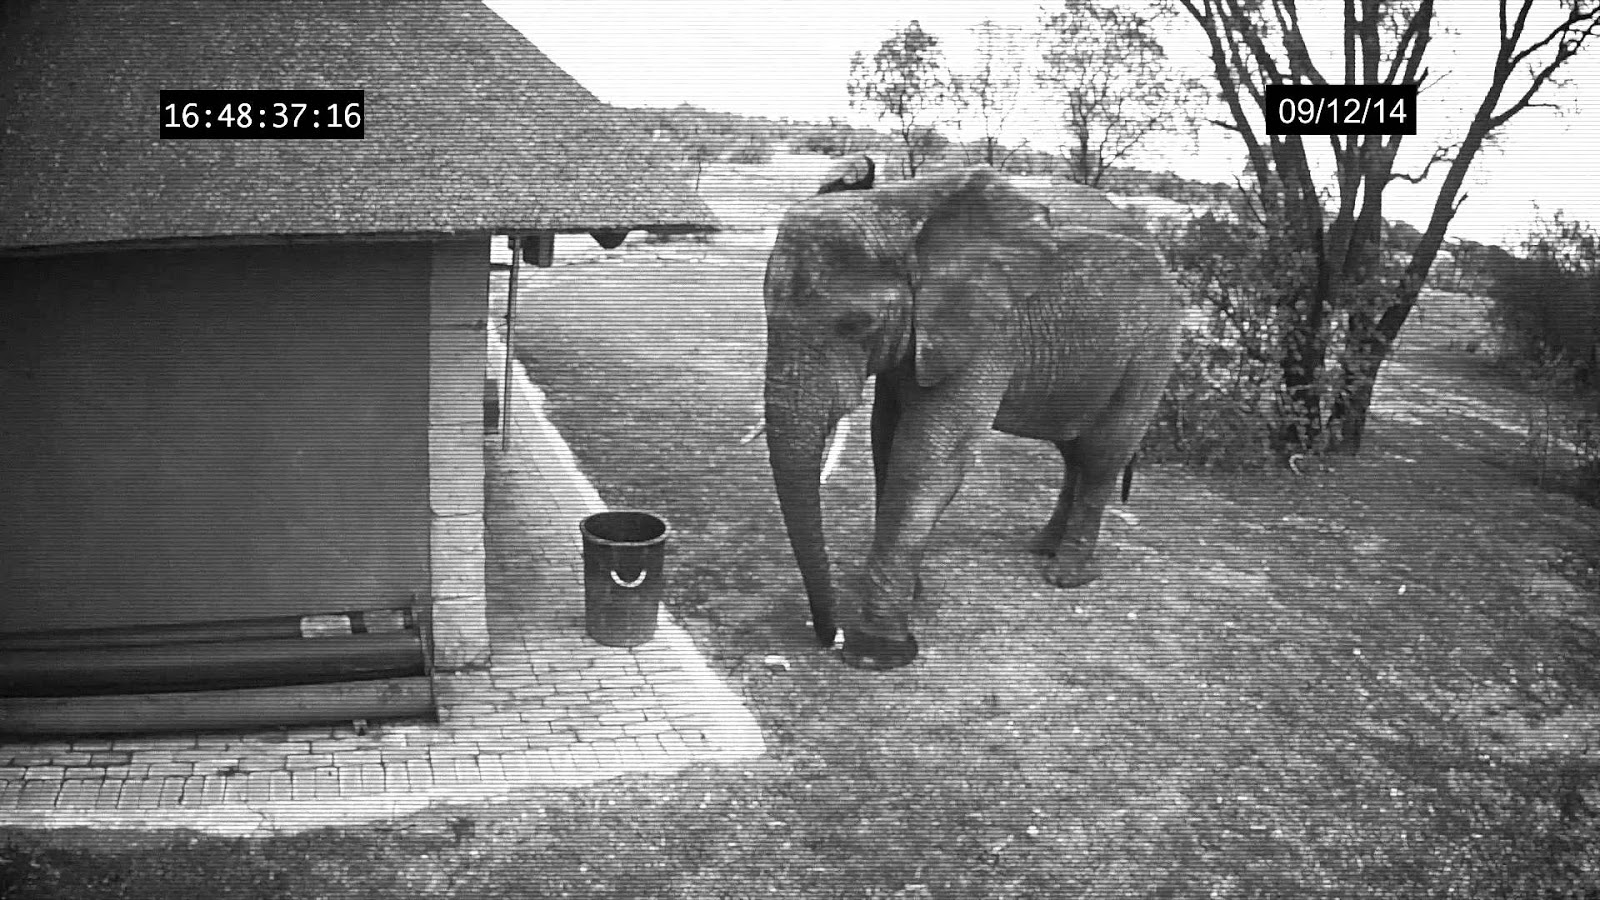 Elephant Caught on CCTV Cameras Cleaning Up The Trash